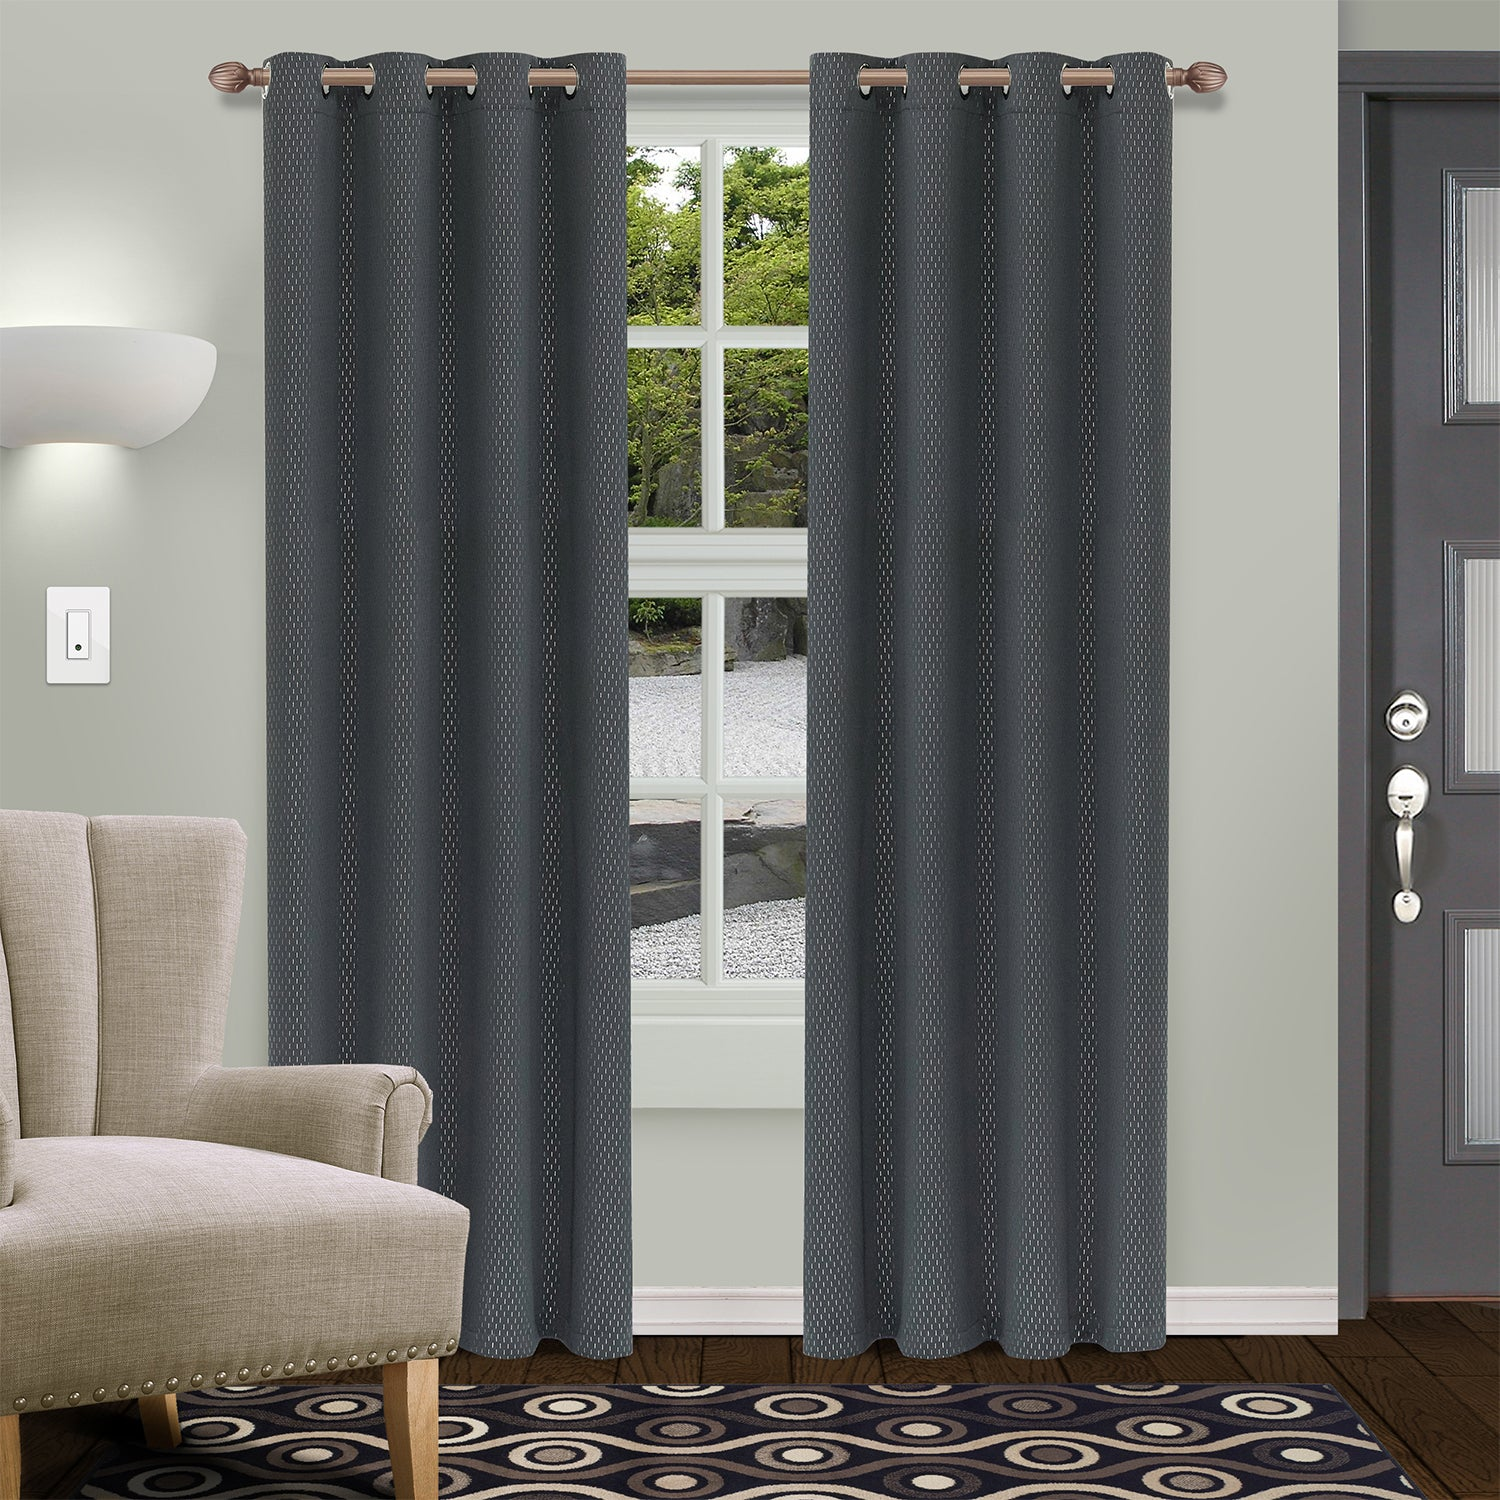 SUPERIOR SHIMMER BLACKOUT 2 PANEL CURTAINS